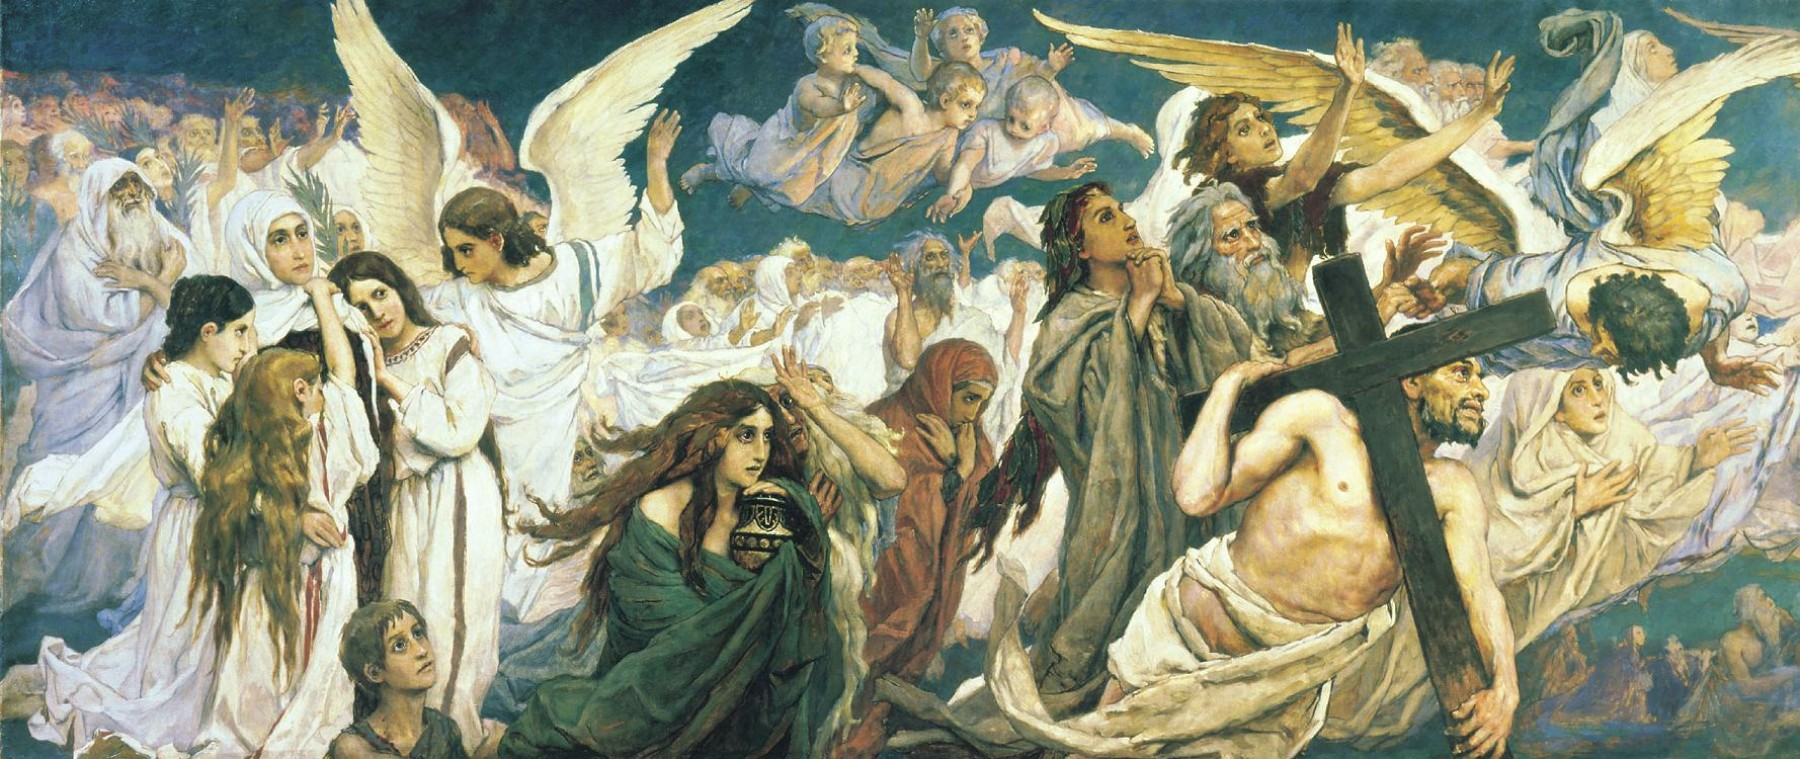 Viktor Vasnecov - Page 2 Viktor-vasnetsov-rejoice-in-the-lord-o-ye-righteous-panel-1-of-the-triptych-1896-e1277610501492